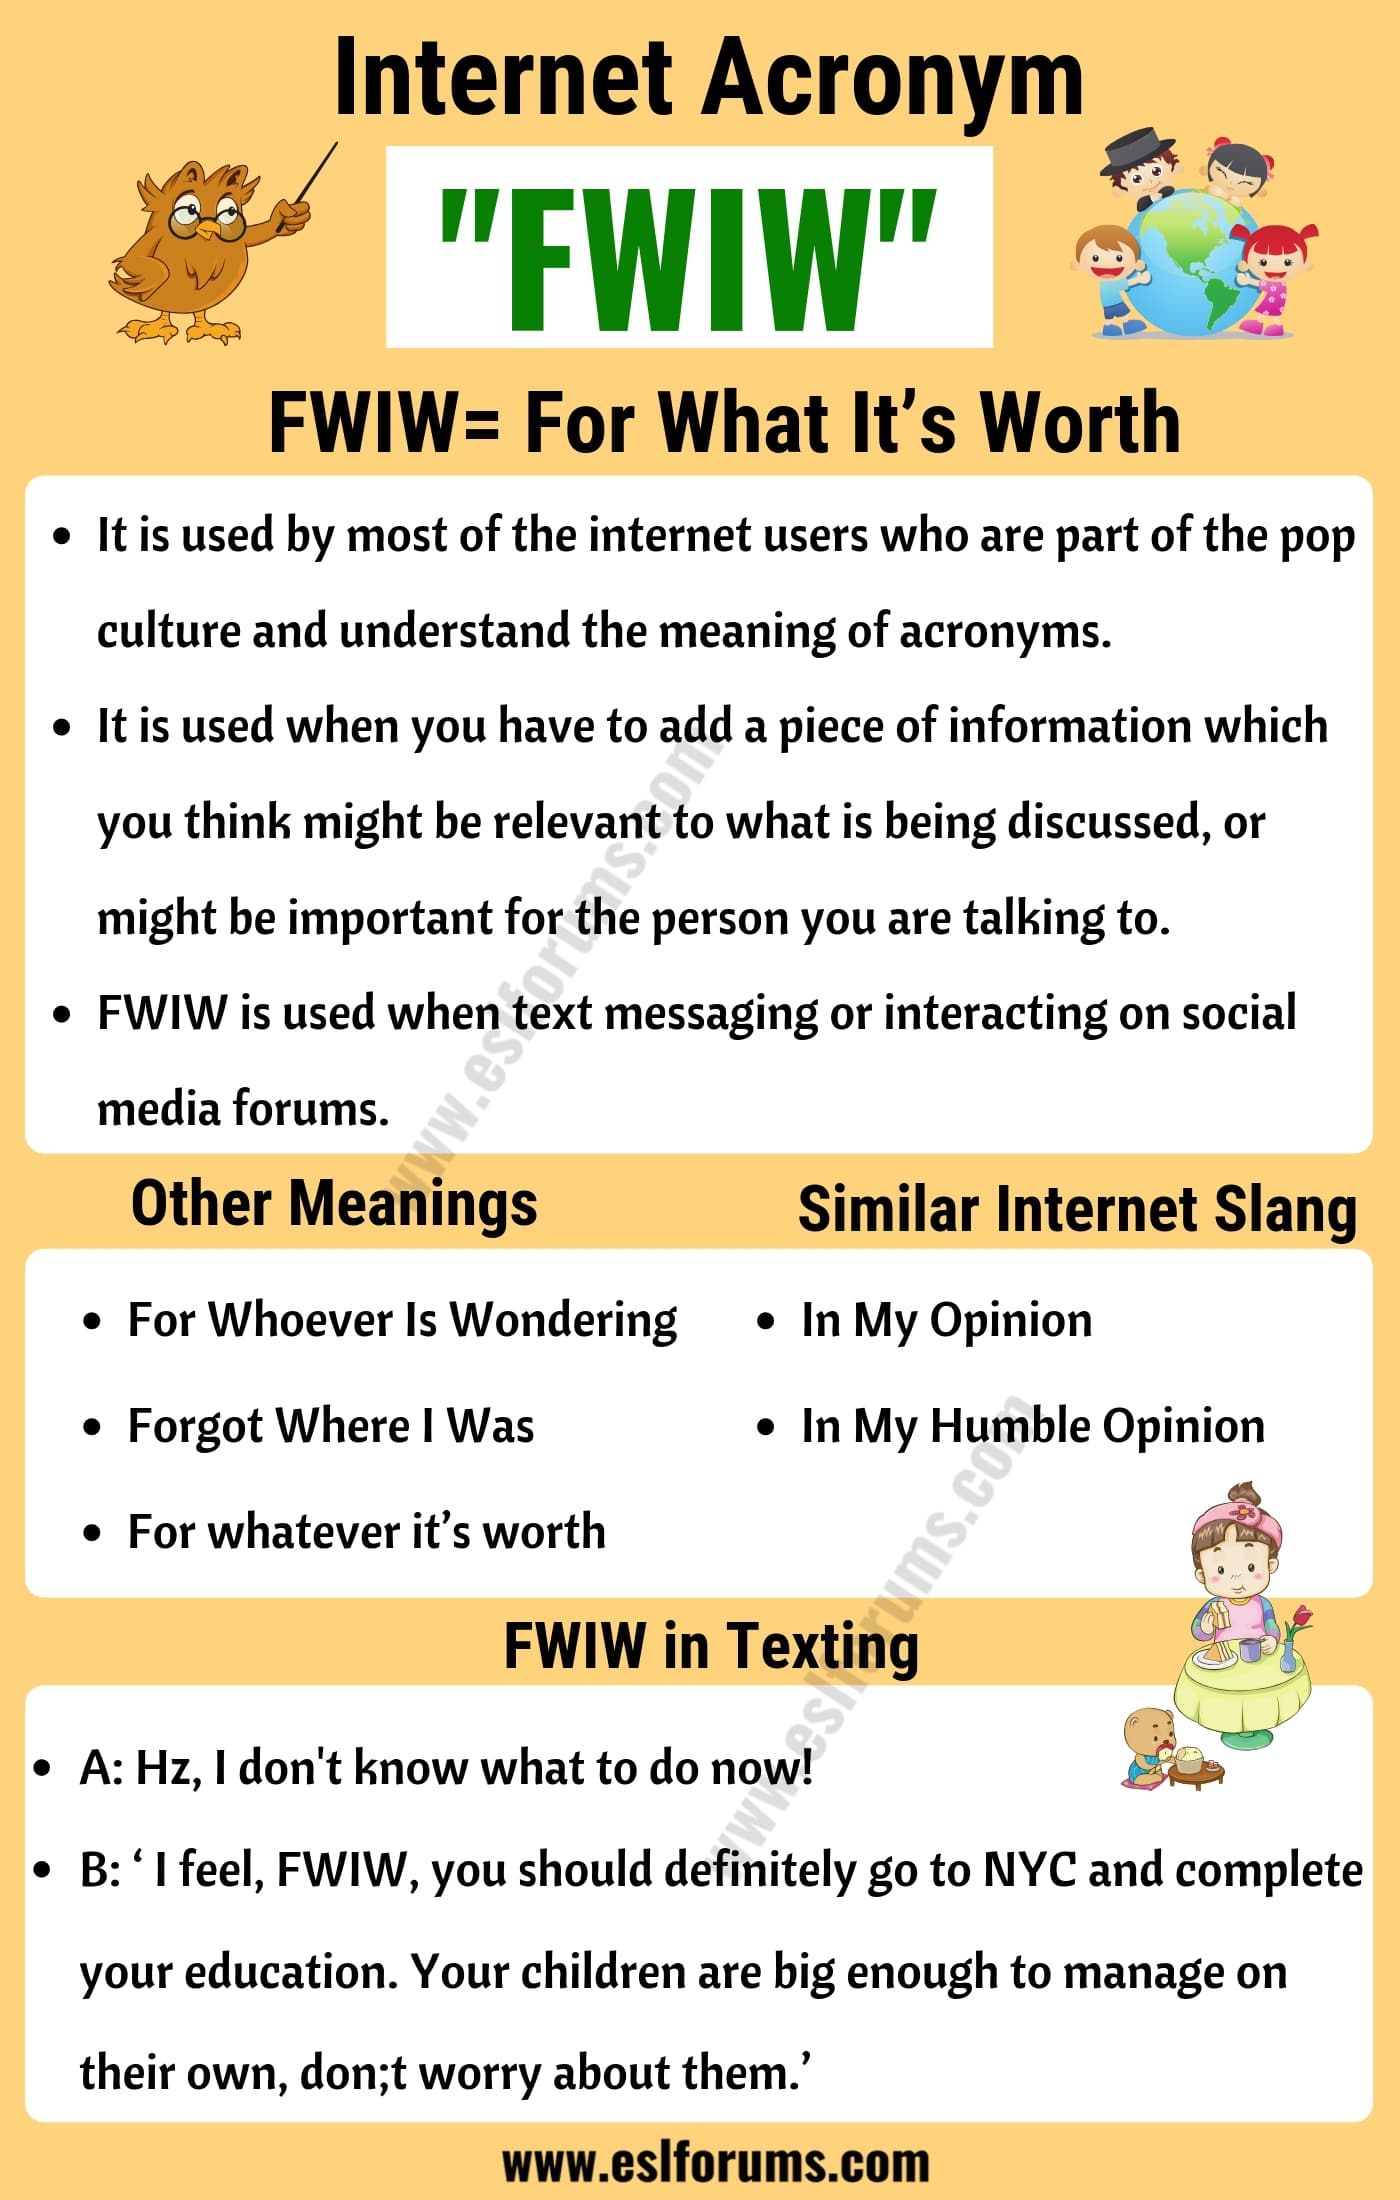 FWIW Meaning | What Does FWIW Stand For?